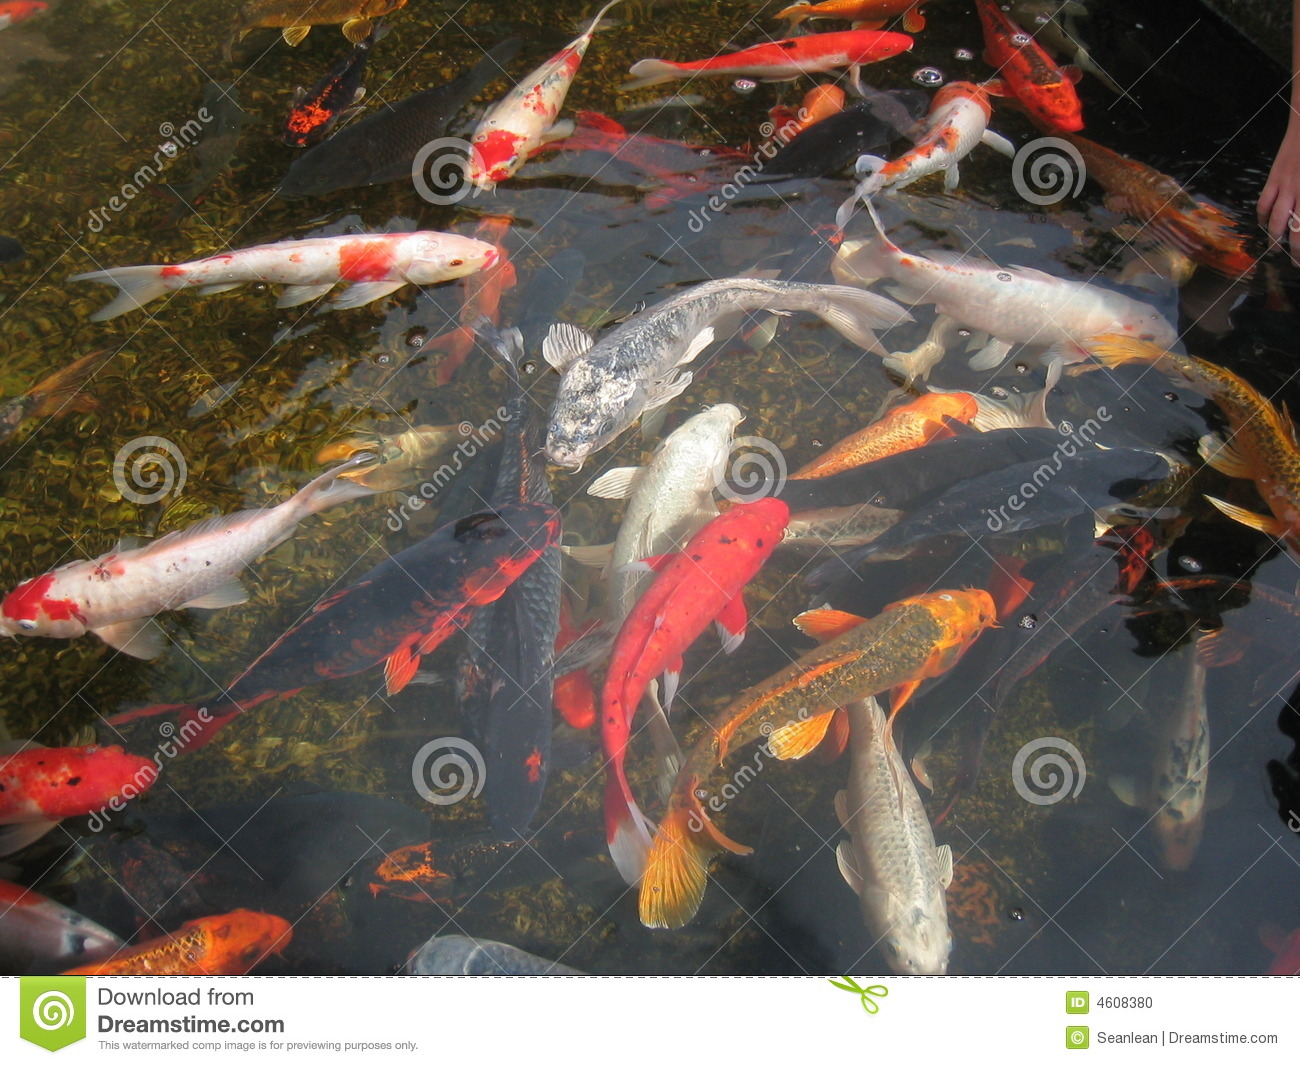 Koi fish in pond stock photo image 4608380 for Koi carp fish pond